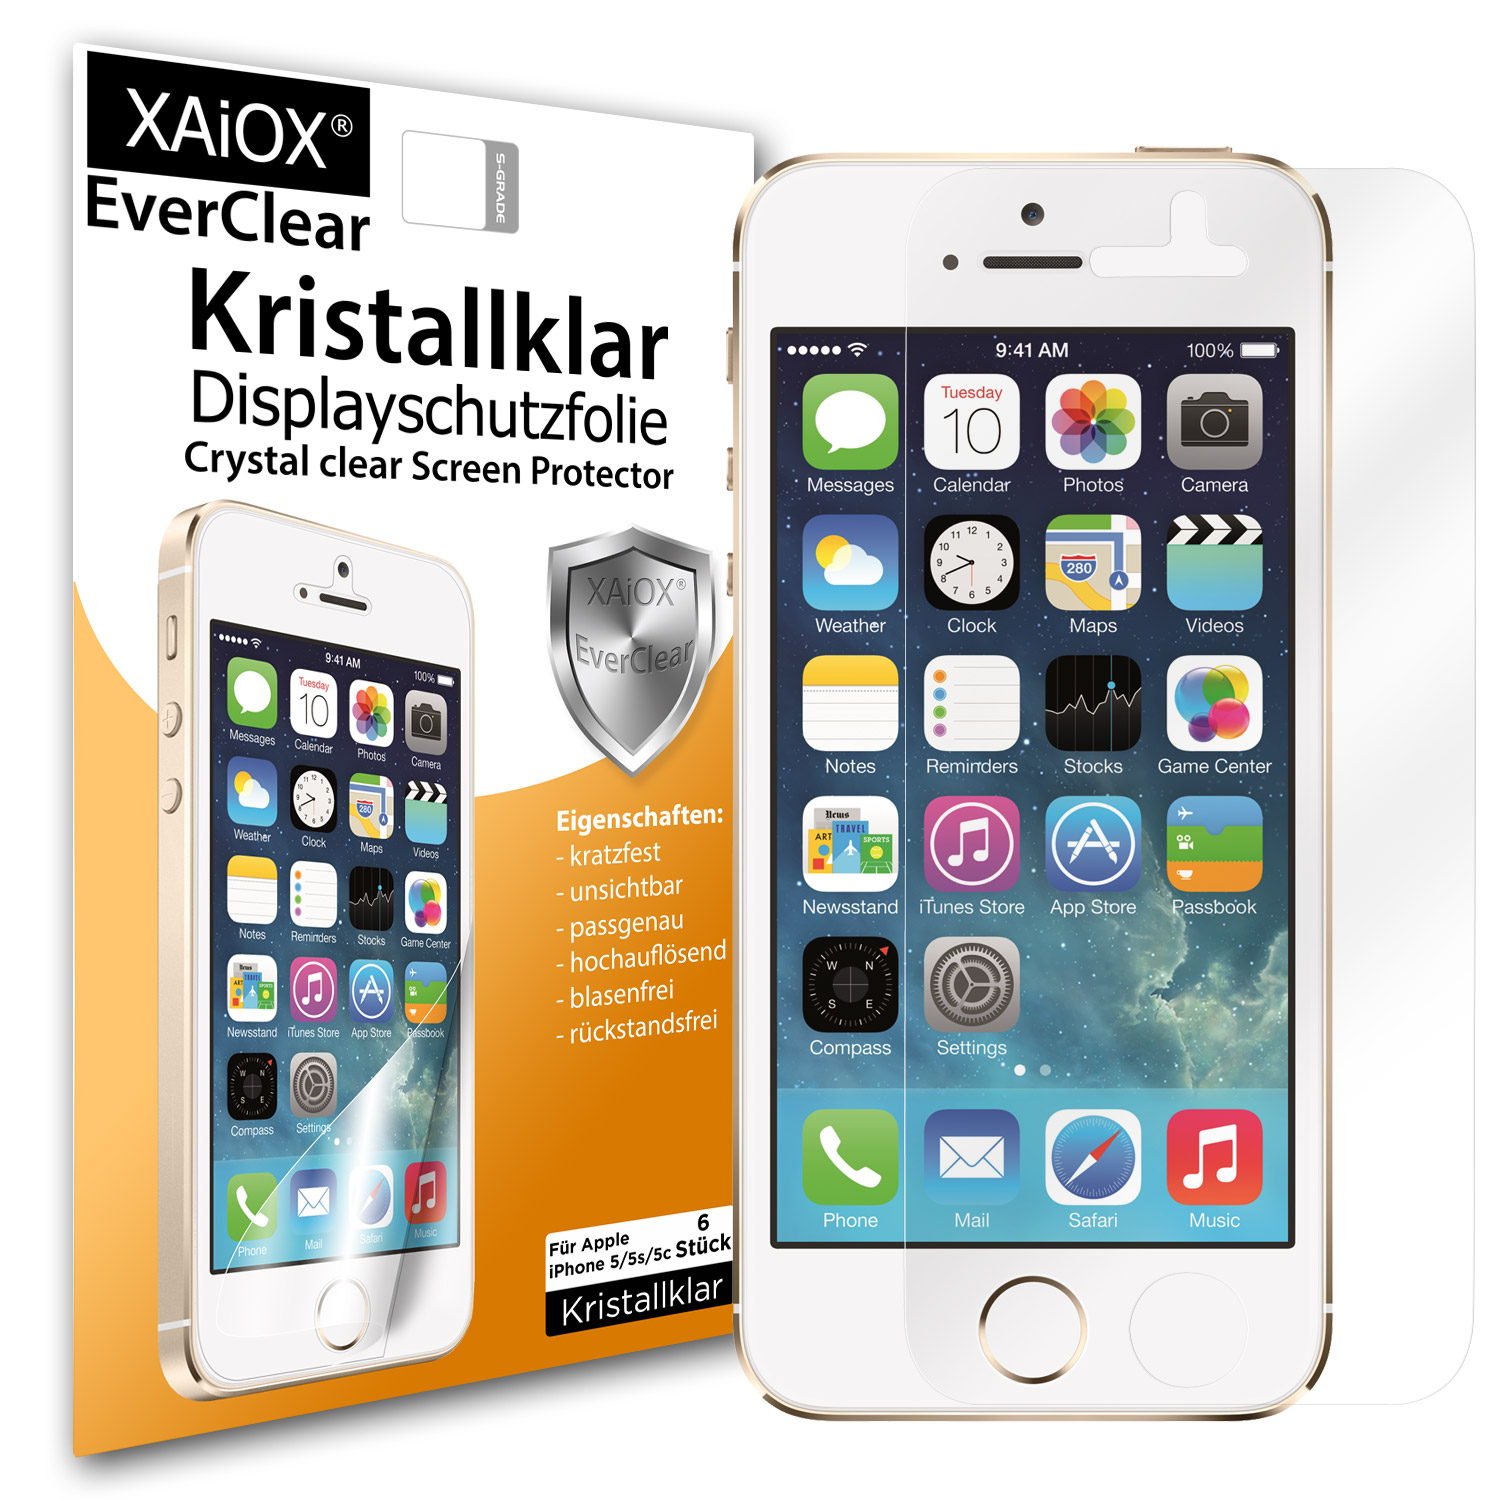 1 x XAiOX Everclear Displayschutzfolie für iPhone 5s 5c 5 (6er Set)